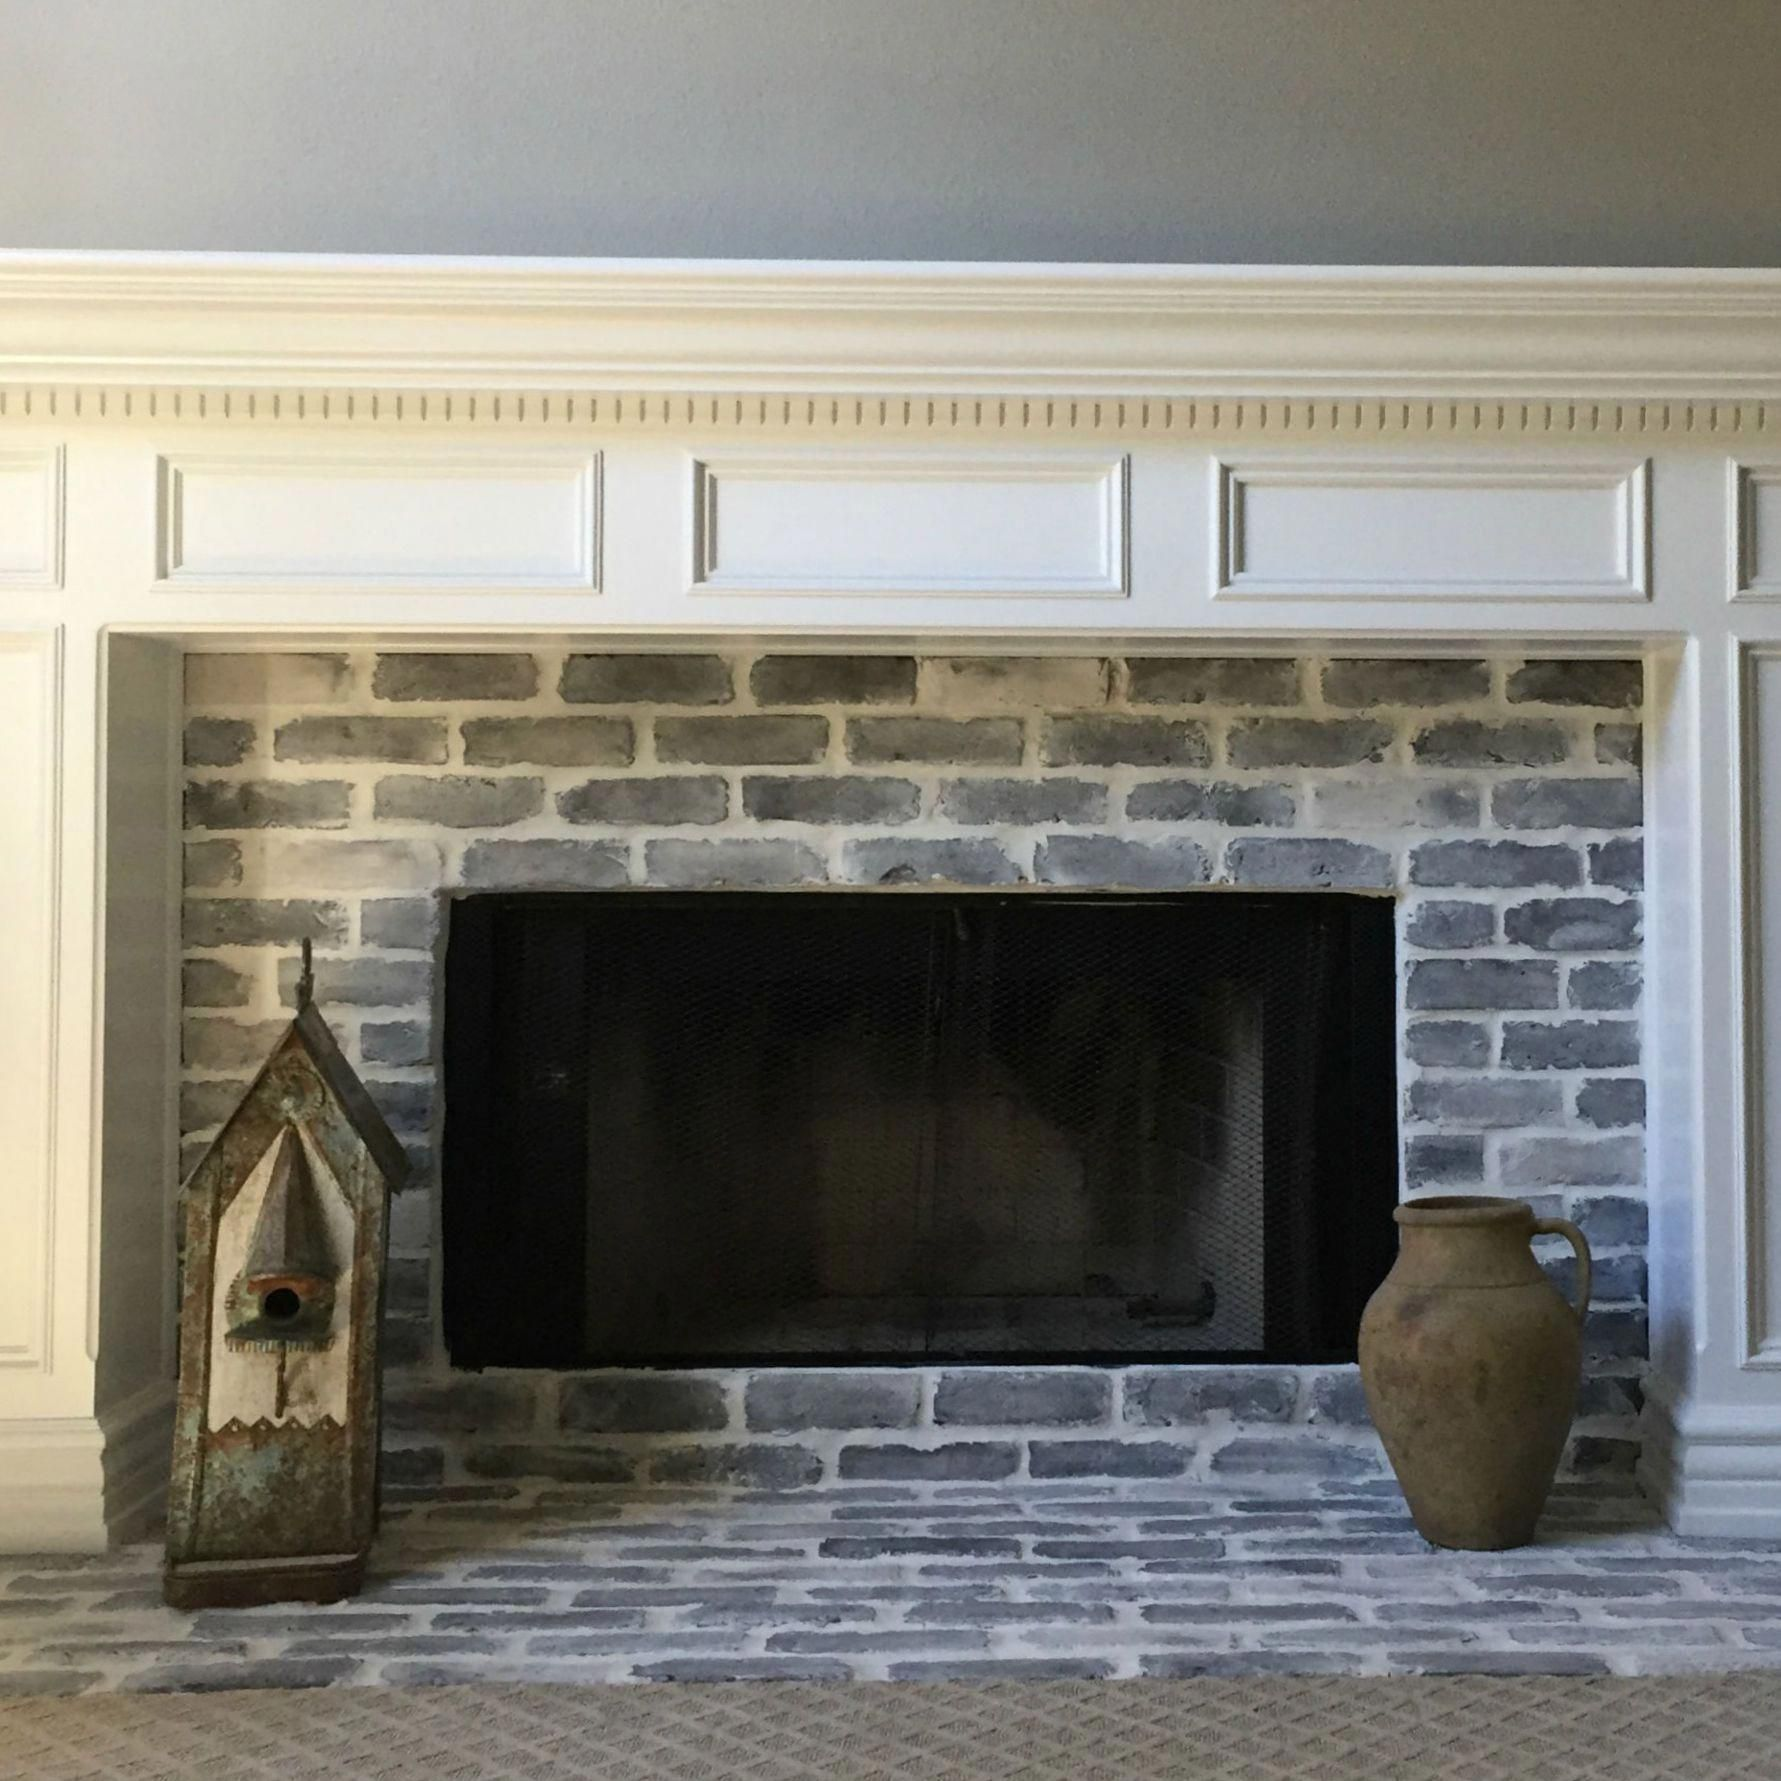 chimneydecorlivingroom in 2020 Farmhouse fireplace